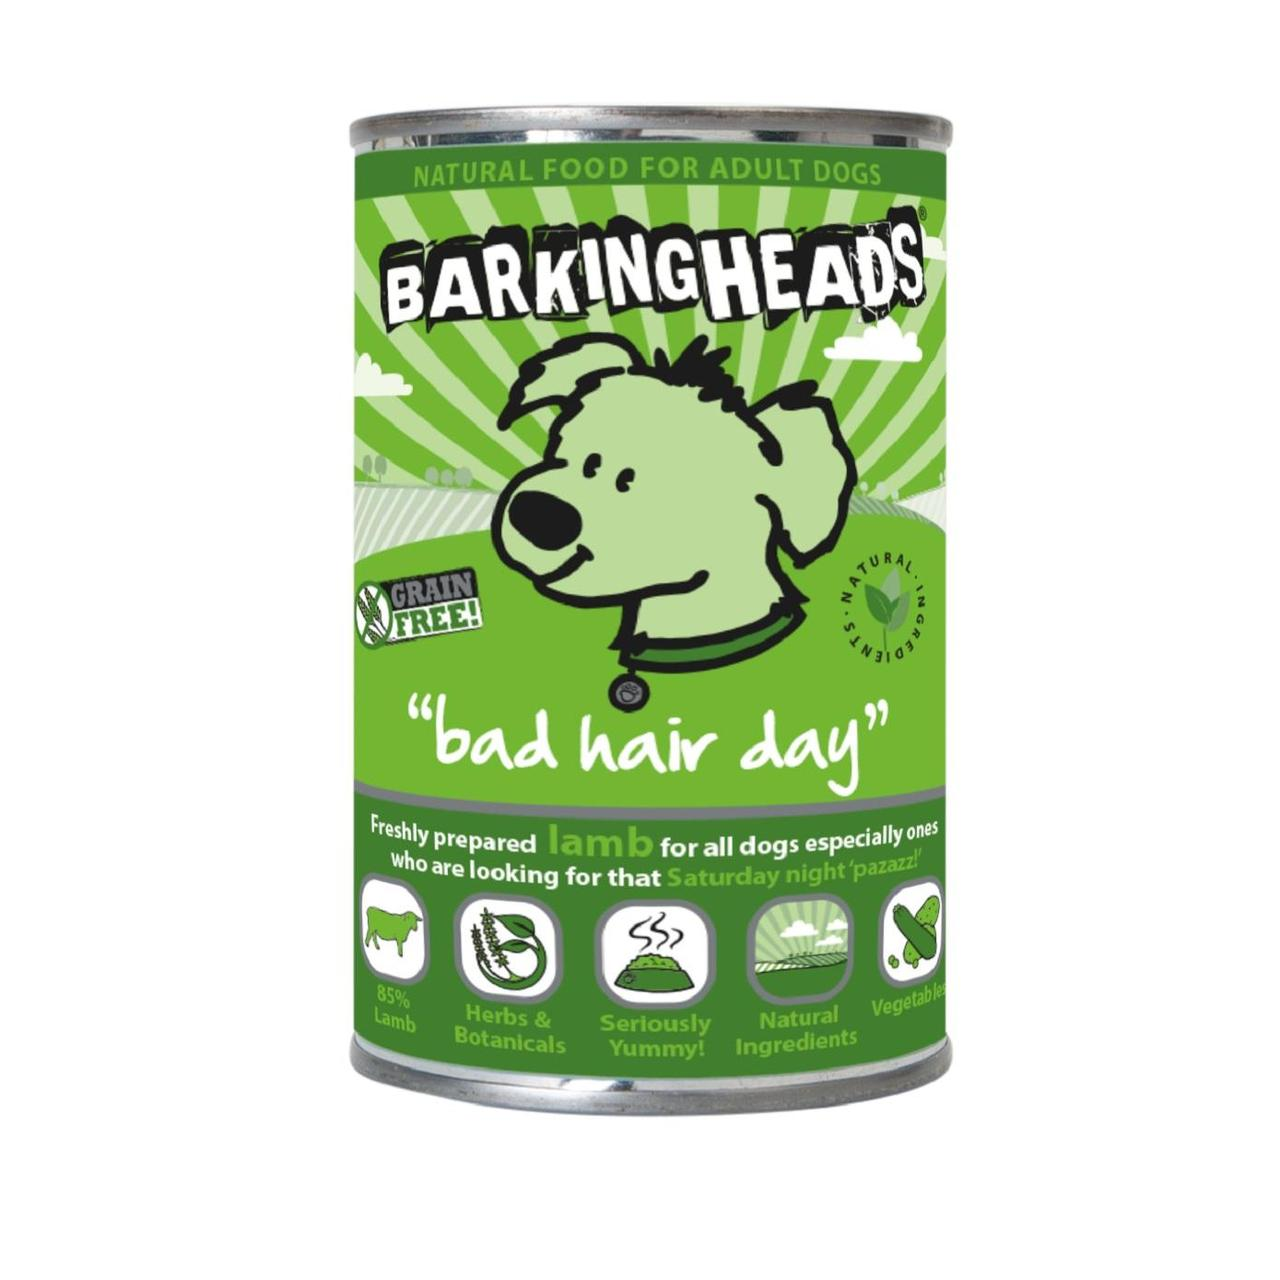 An image of Barking Heads Bad Hair Day